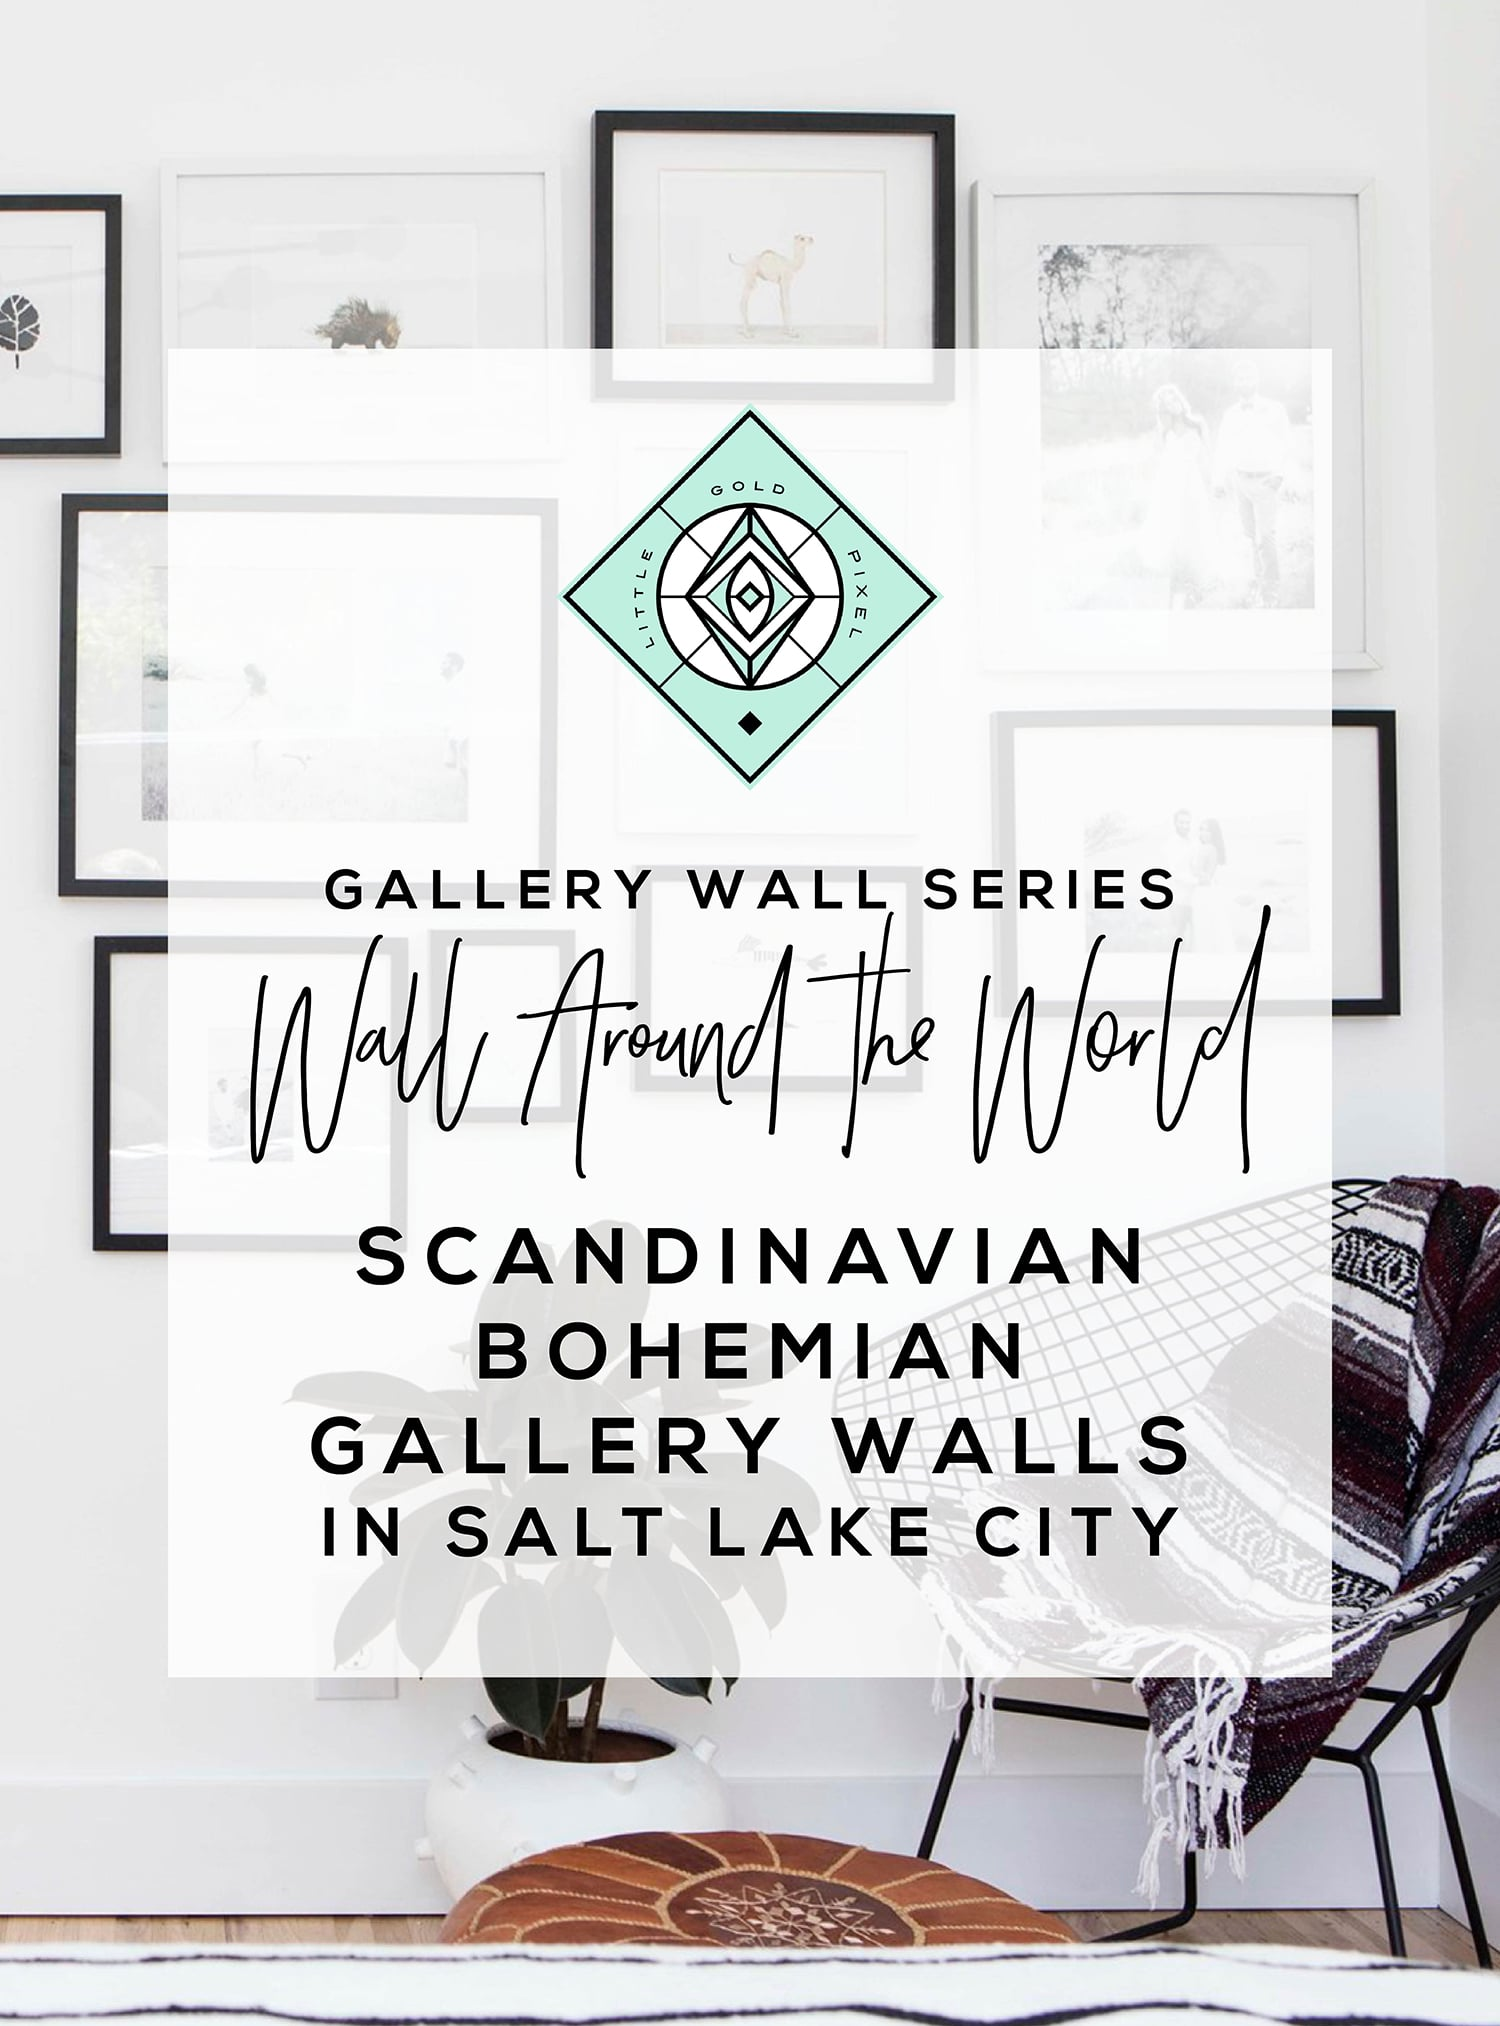 Wall Around the World: A Gallery Wall Series by Little Gold Pixel •Part 9: Scandinavian Boho Gallery Walls in Utah